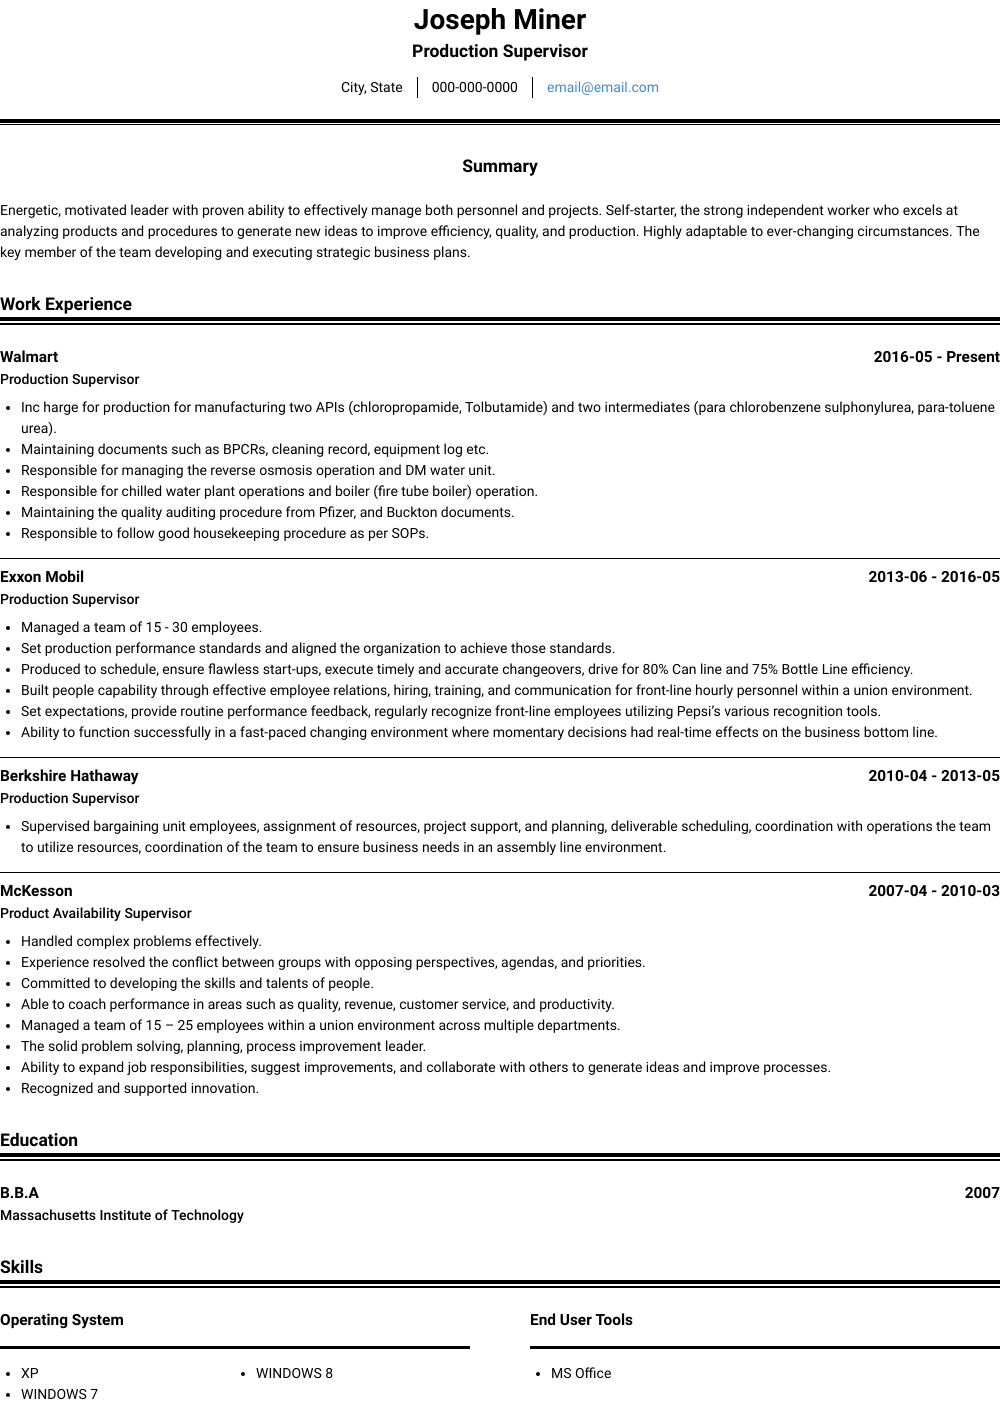 Production Supervisor Resume Sample and Template